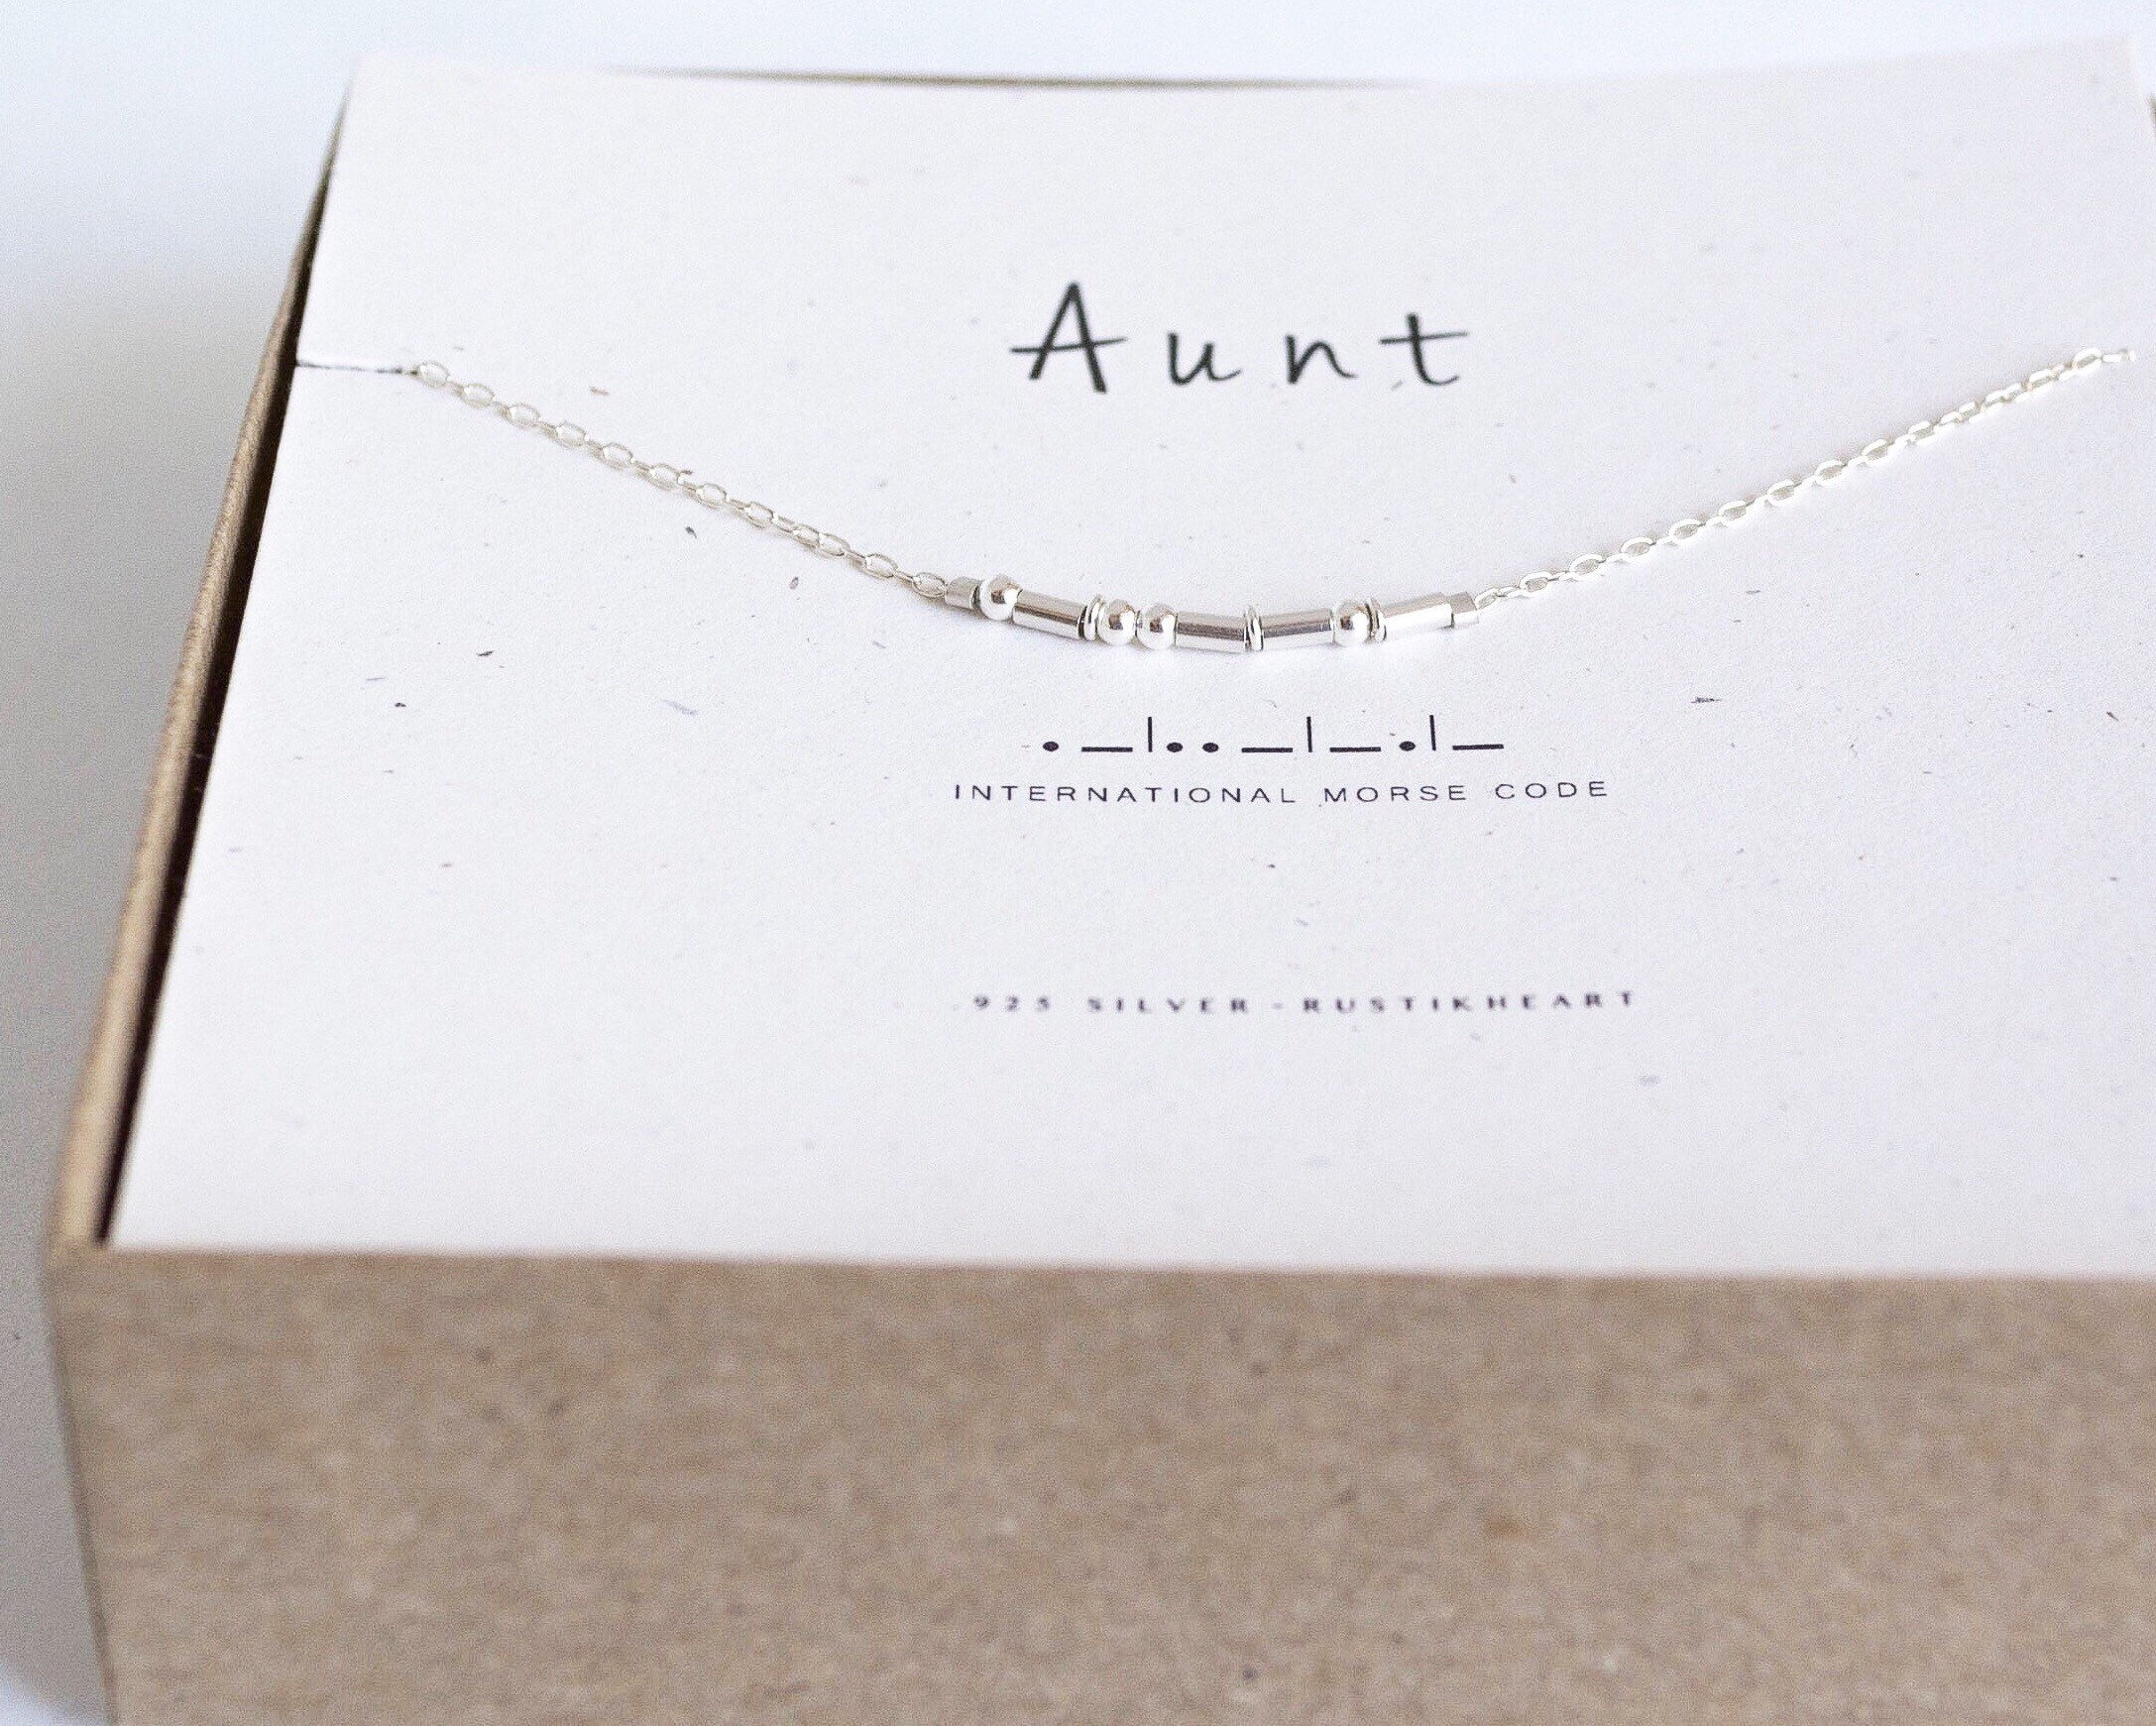 products aunt grandma mum color her rose xmas son brother grandpanecklaces sister grandpa mom necklace gold women for daughter gifts mother silver heart uncle dad